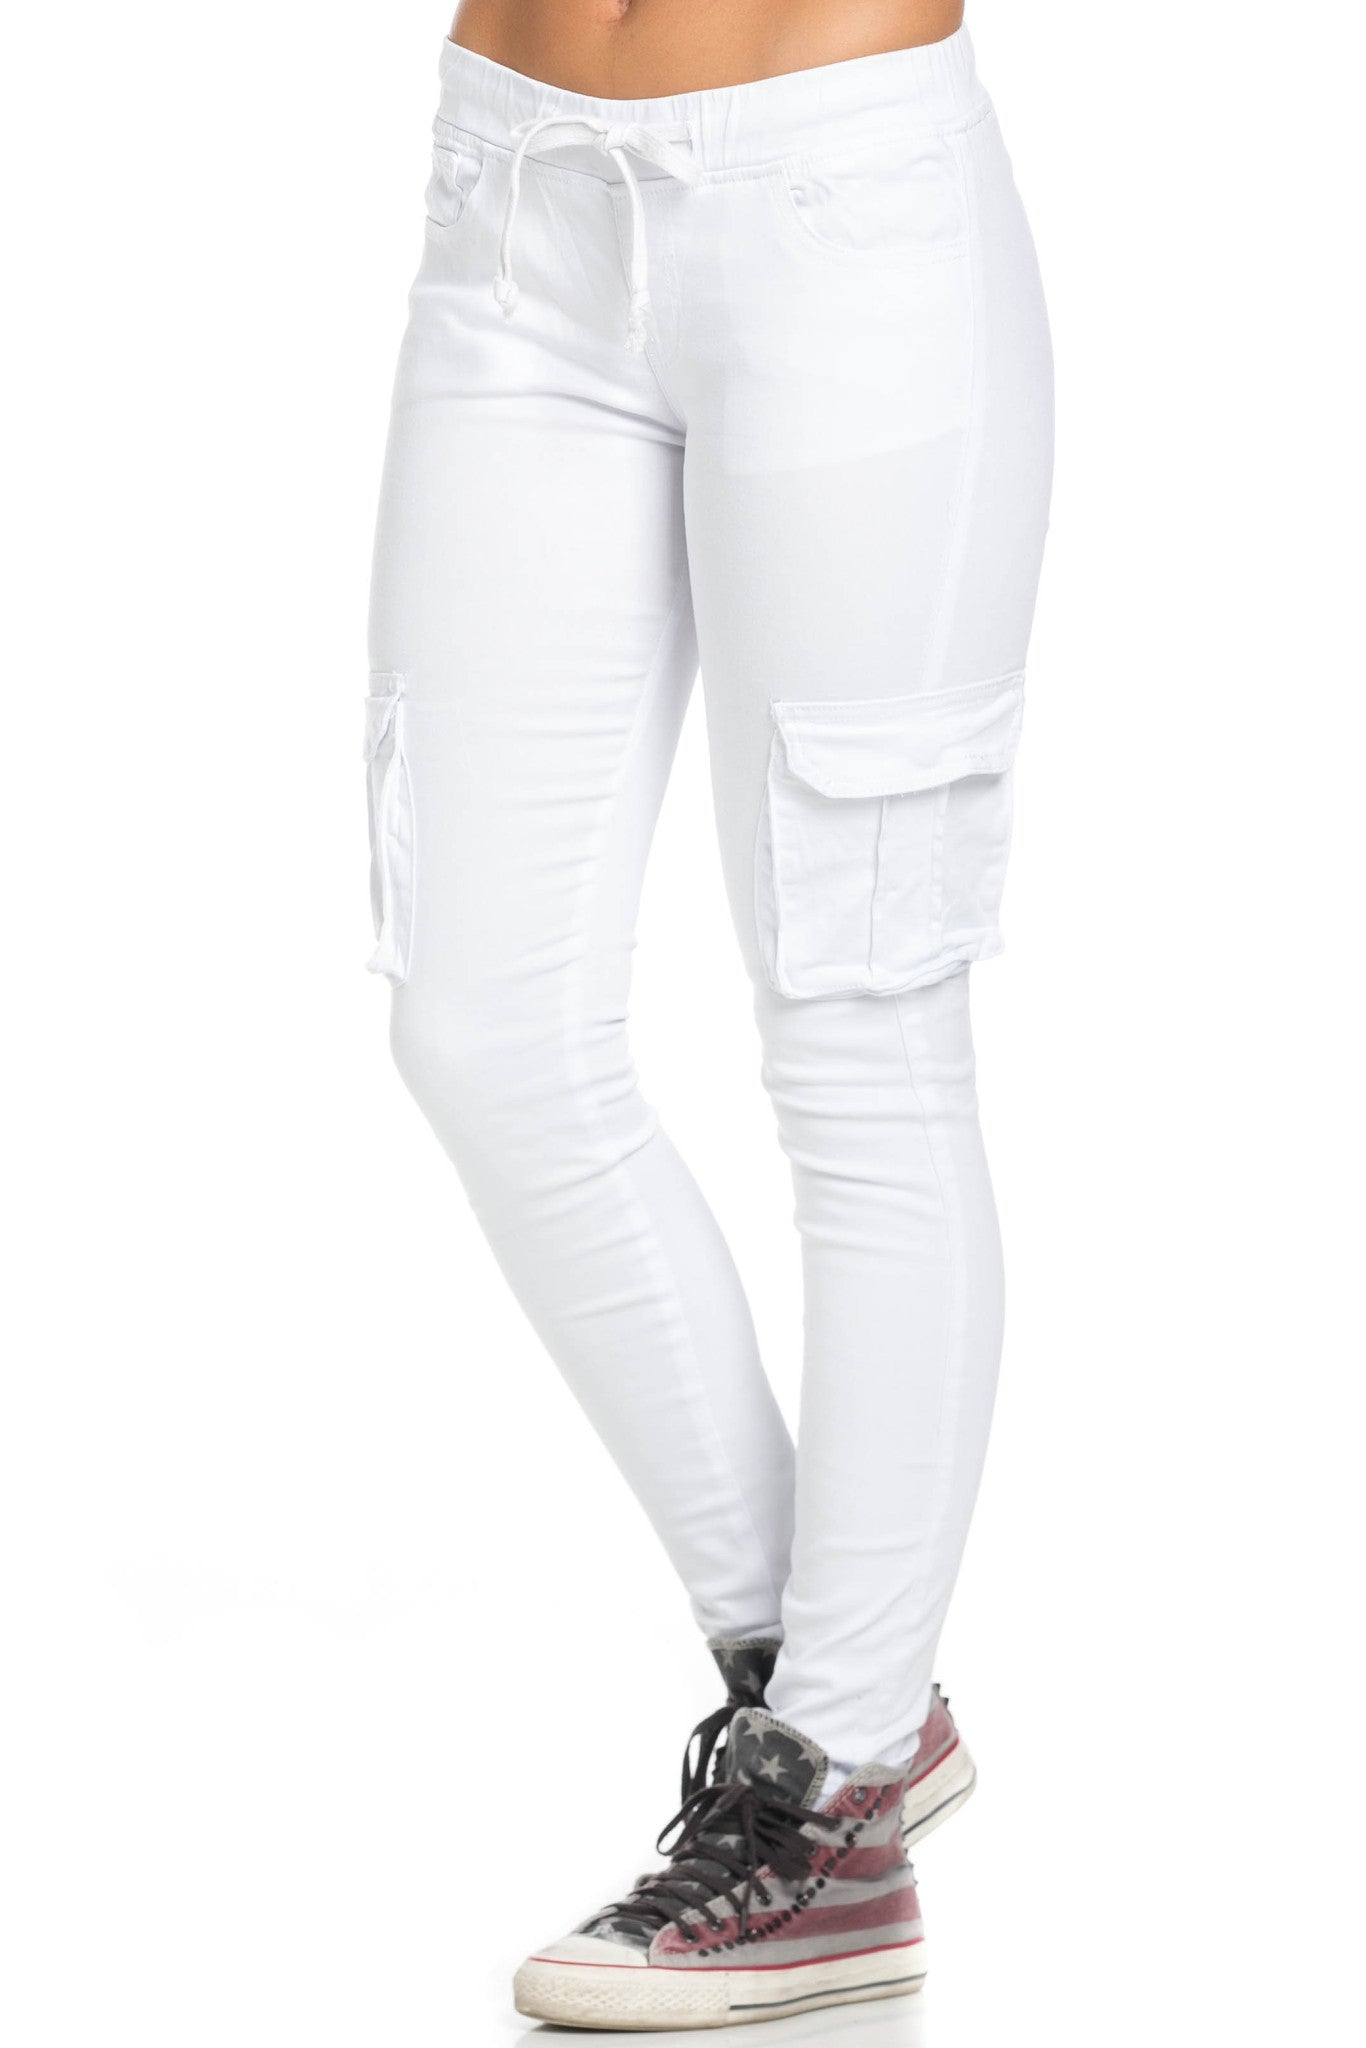 Mid Rise Skinny White Cargo Pants - Pants - My Yuccie - 1